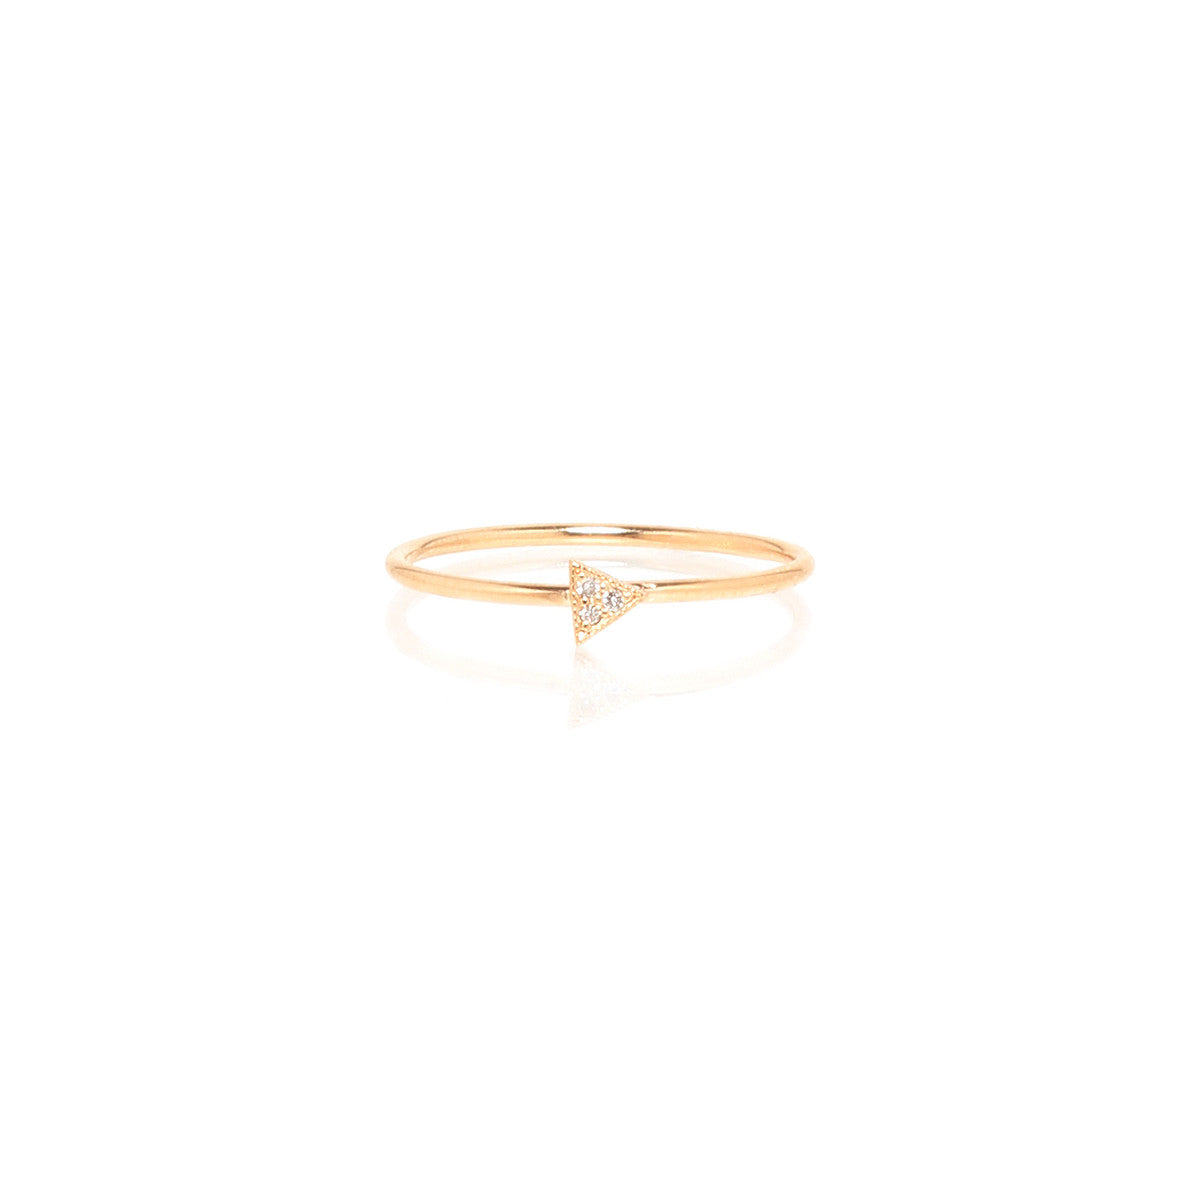 Zoë Chicco 14kt Yellow Gold Itty Bitty Pave Triangle Ring